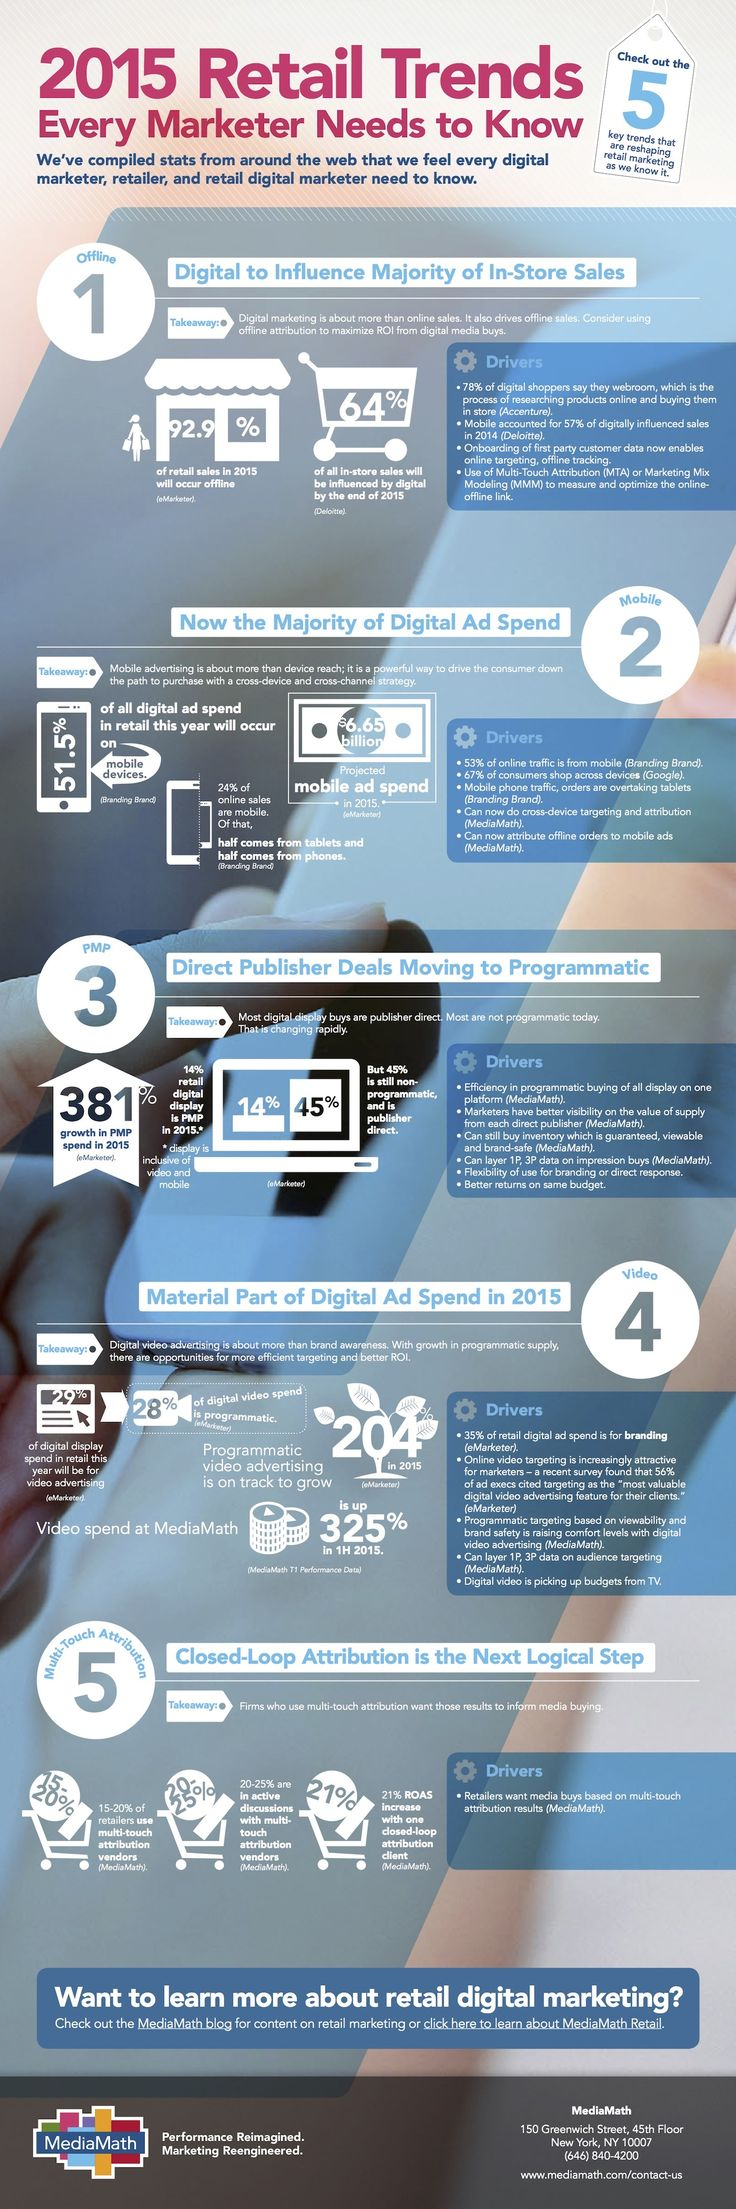 5 Digital Trends Influencing the Future of Retail (Infographic) | SocialTimes